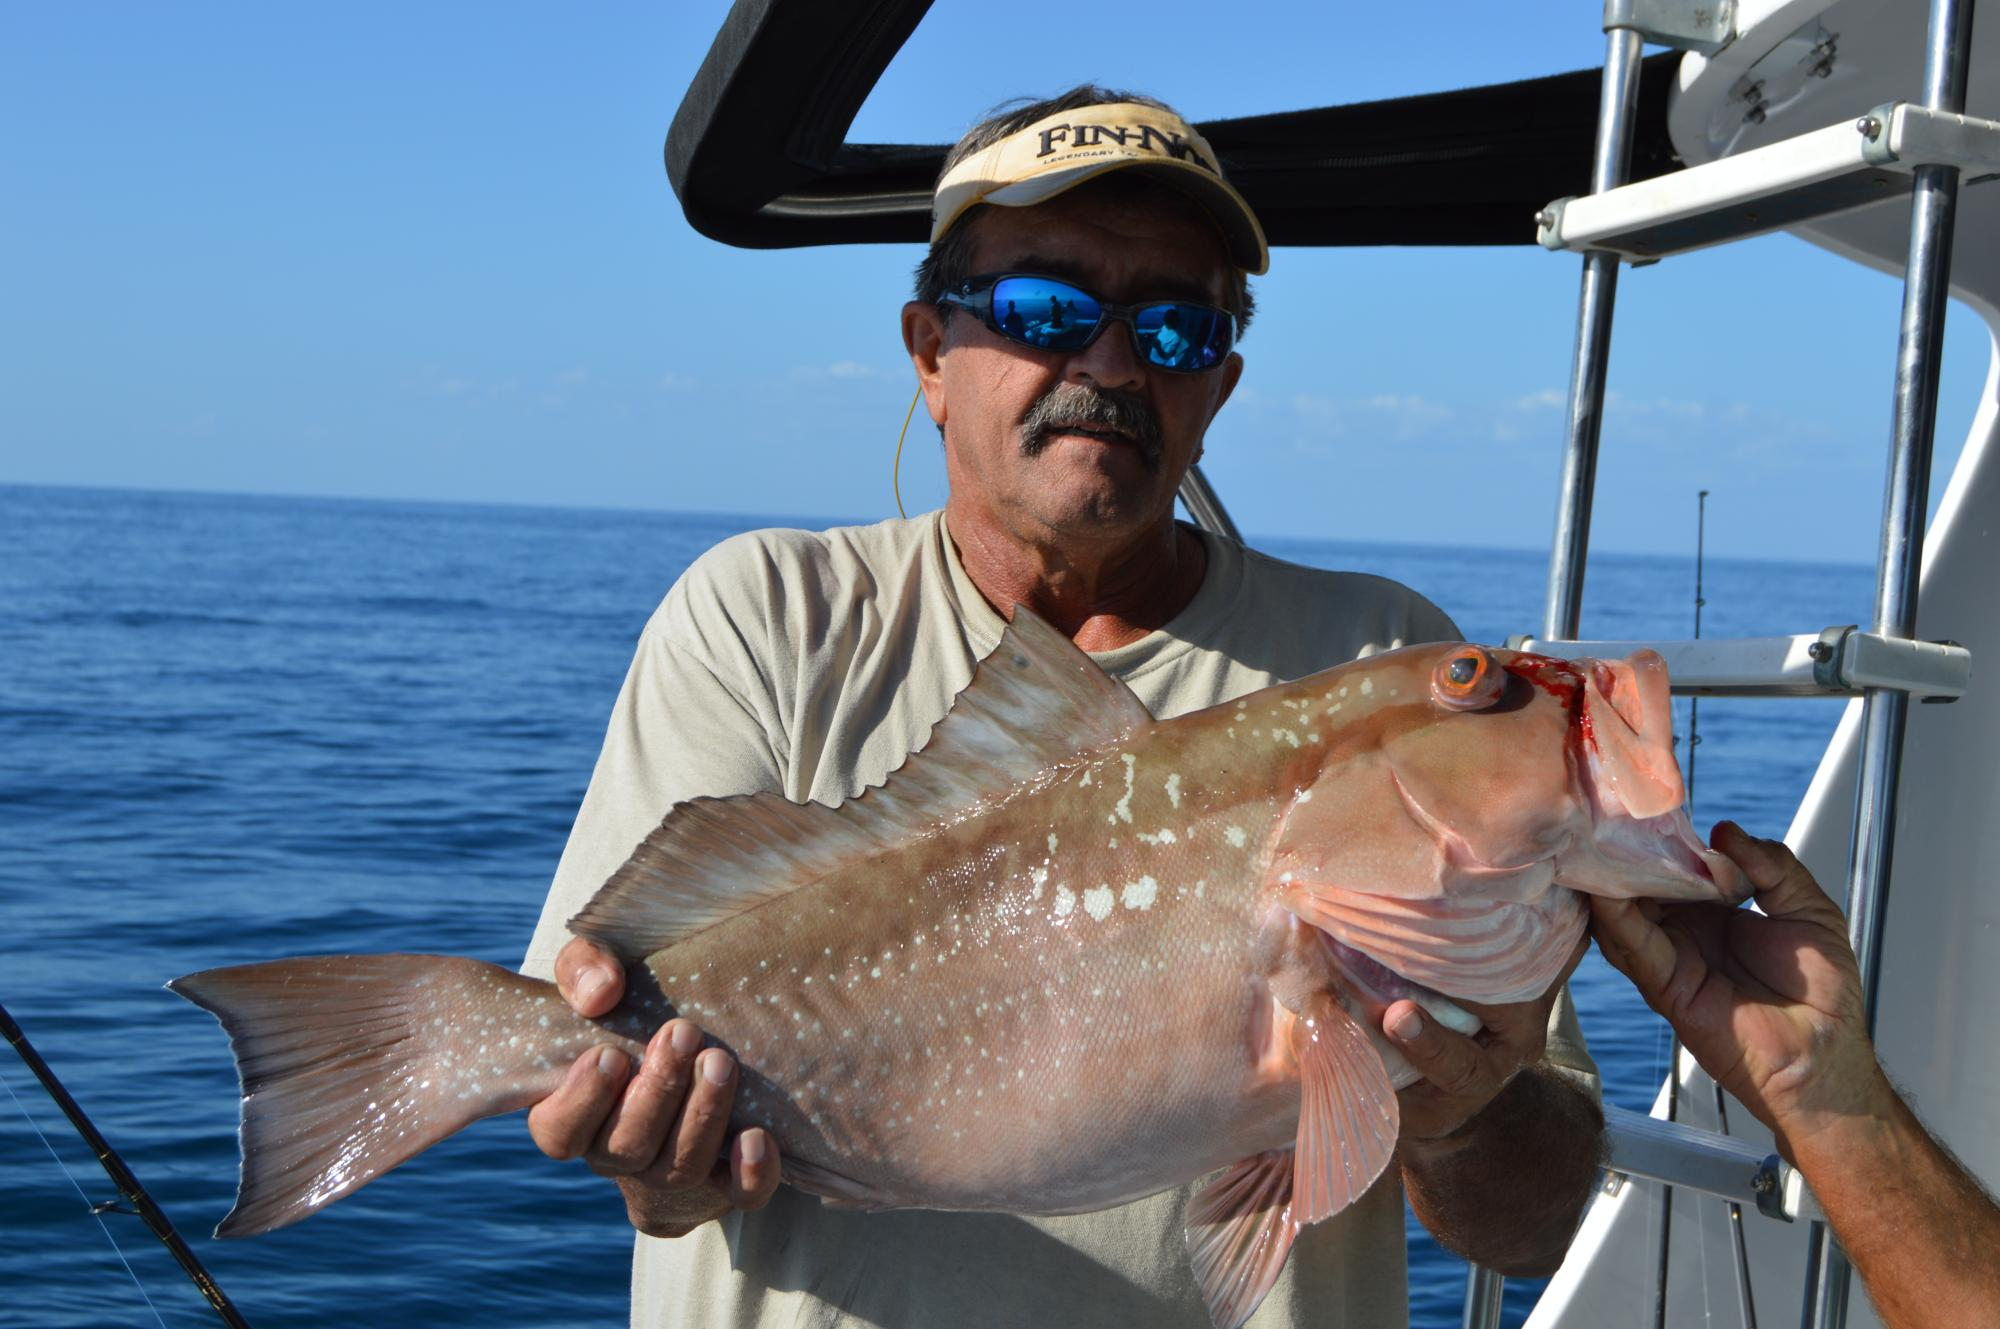 Reel action charters llc for Reel action fishing charters